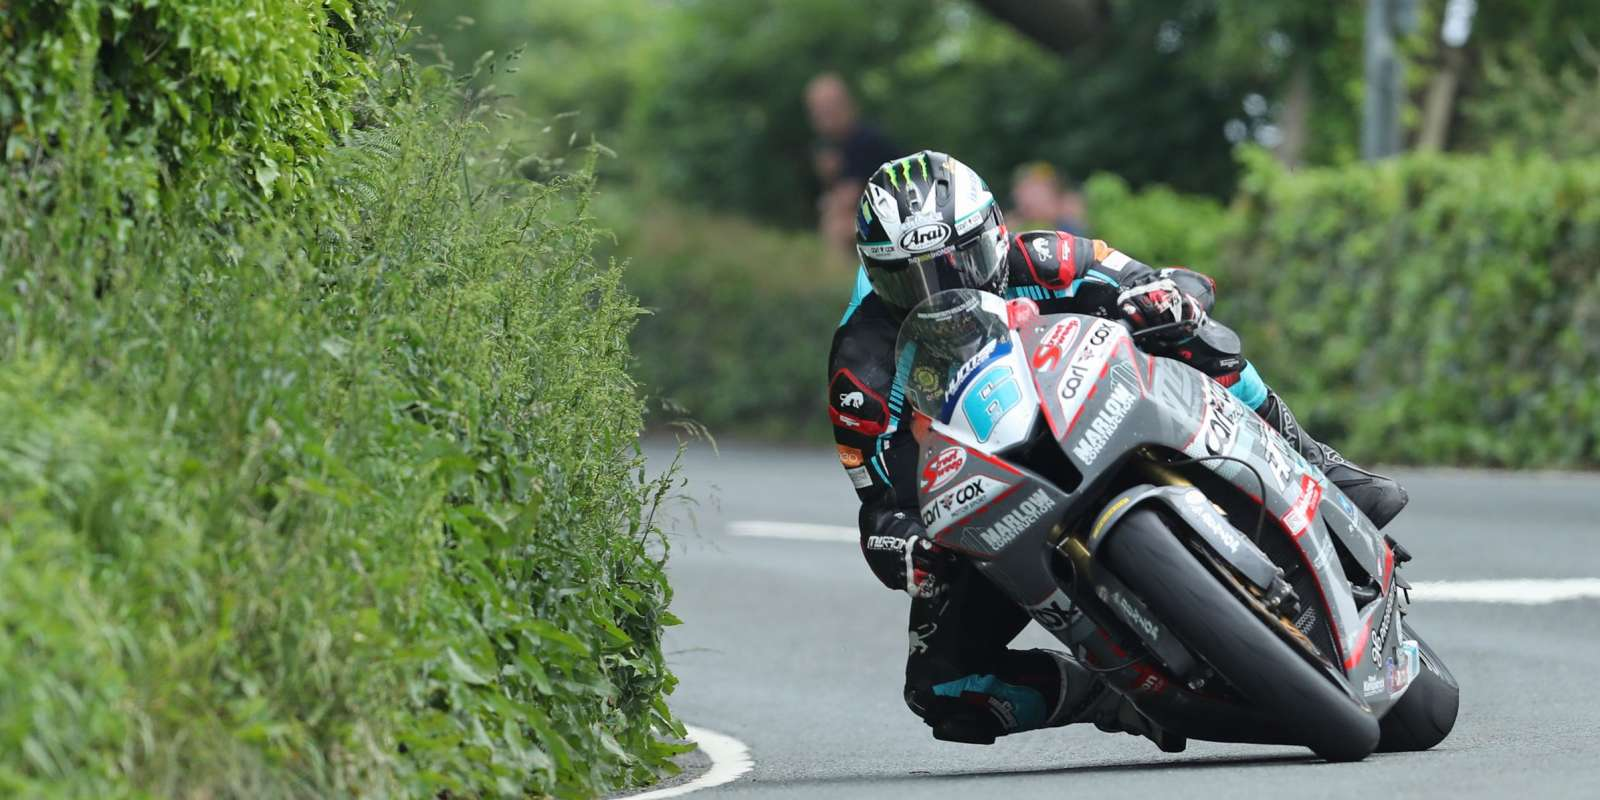 Images from the Monster Energy Supersport Race 1 - Isle of Man TT 2018